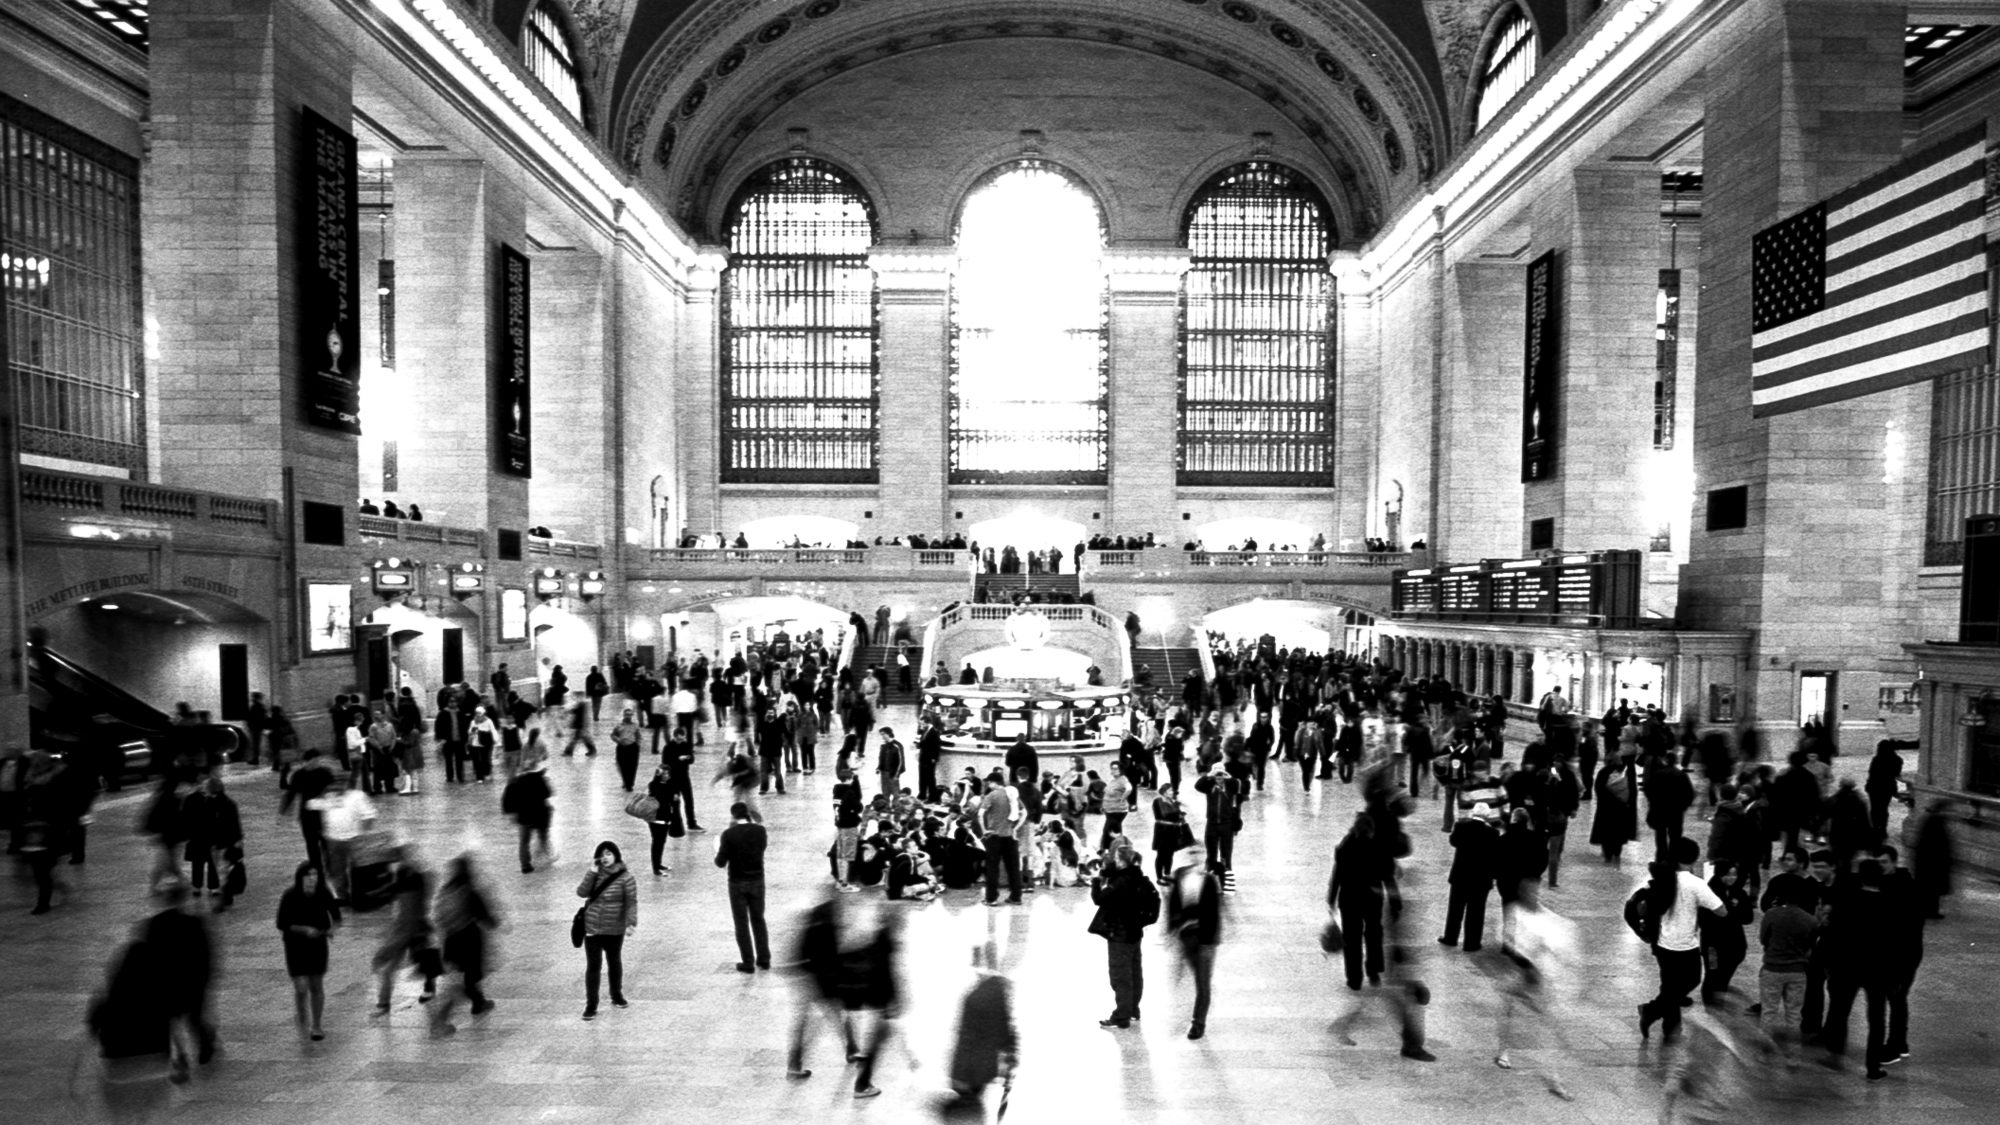 Grand Central Station (Pic: Bill Smith)